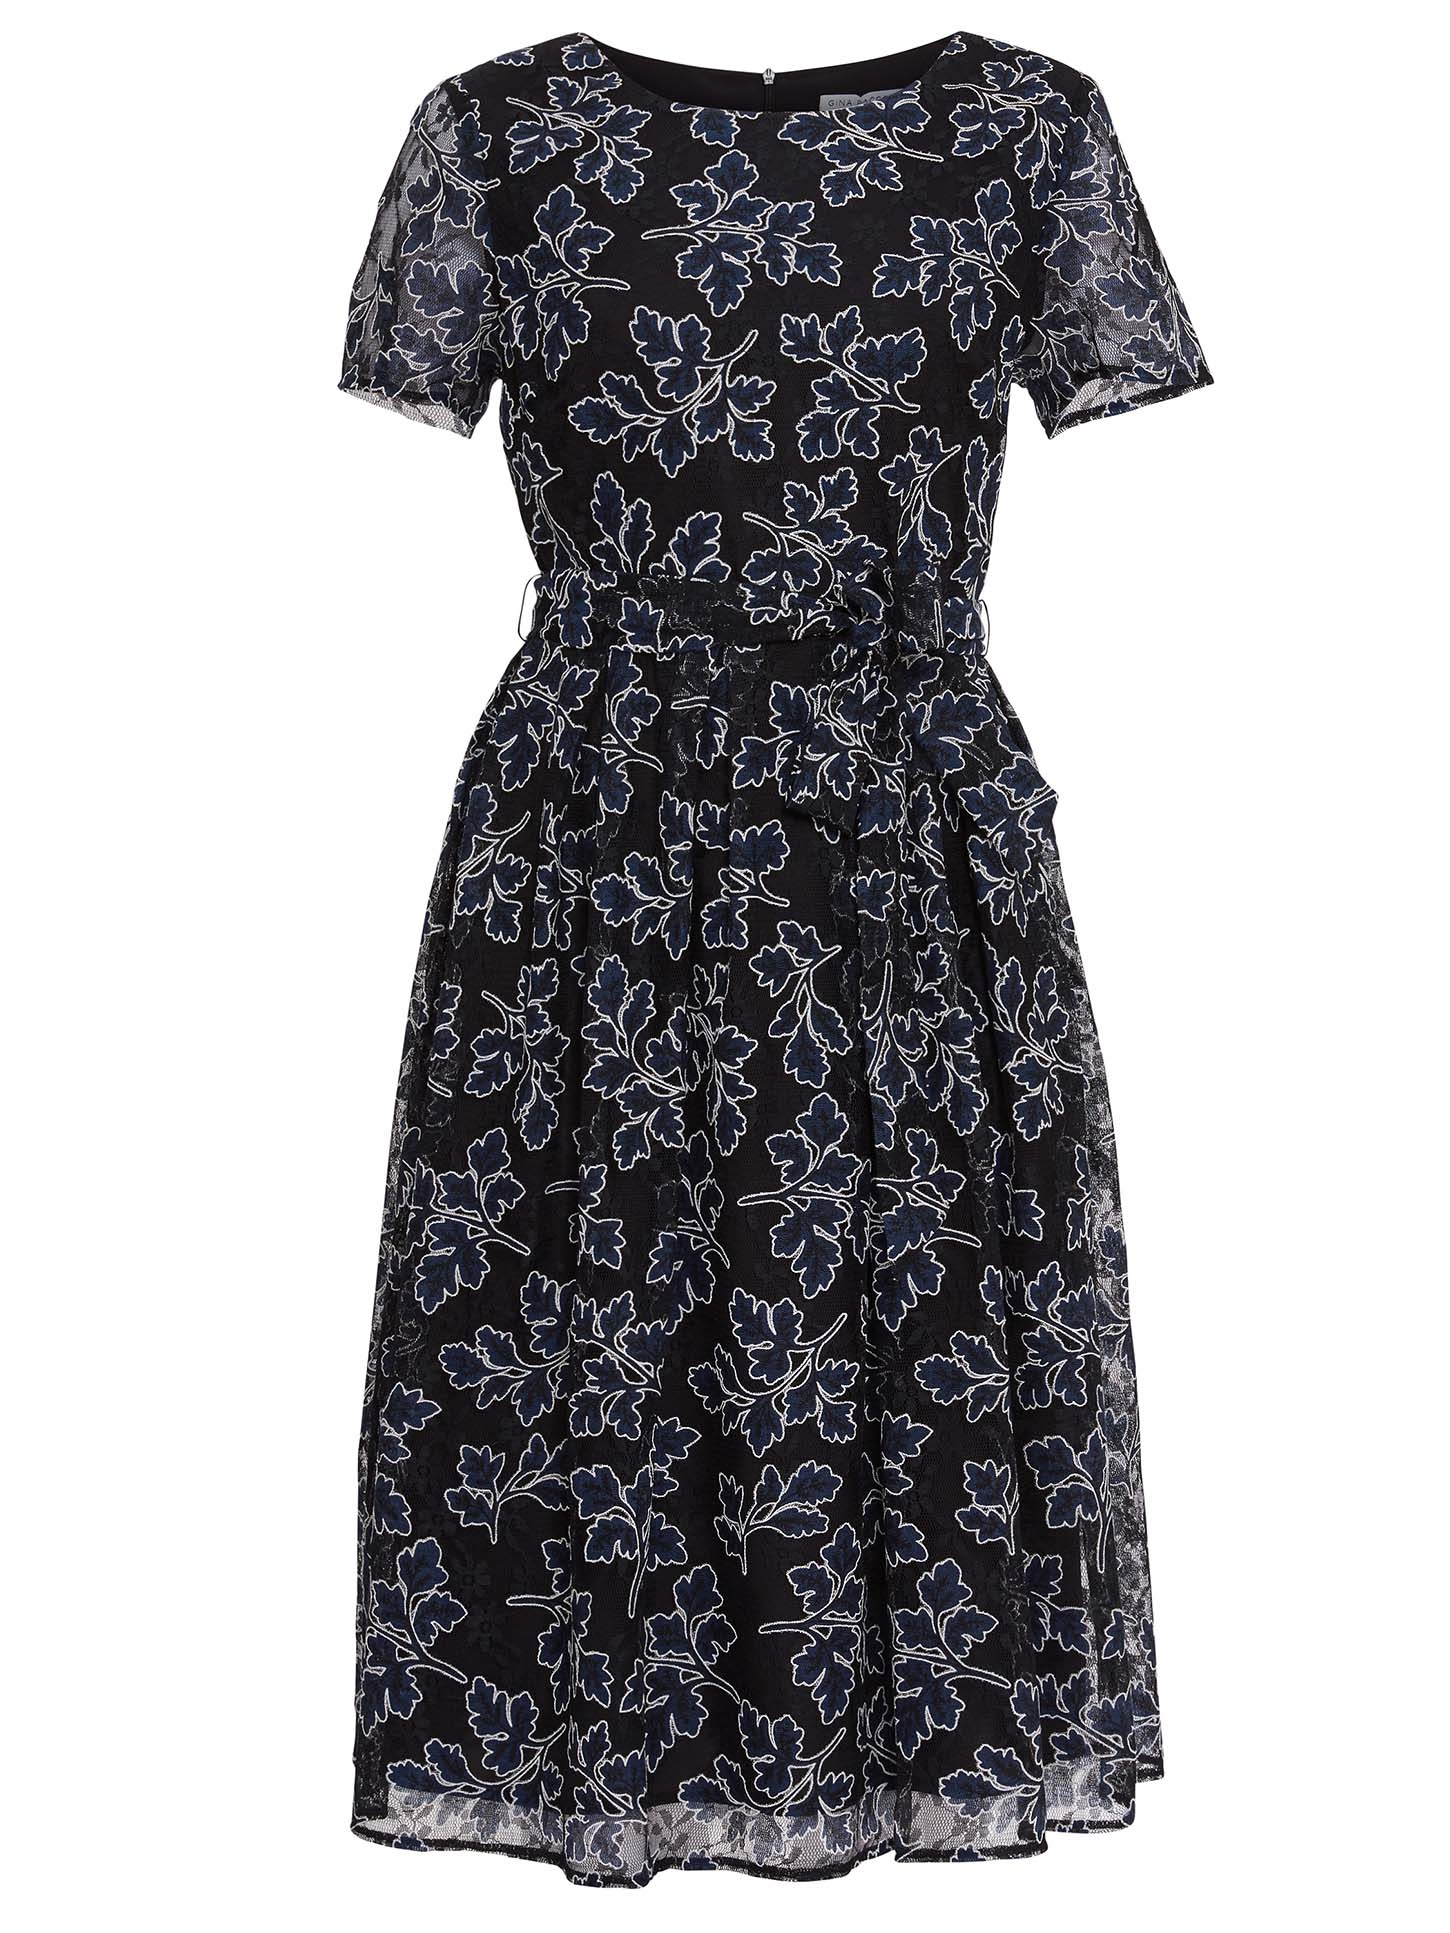 Moriko Embroidered Dress With Tie Waist